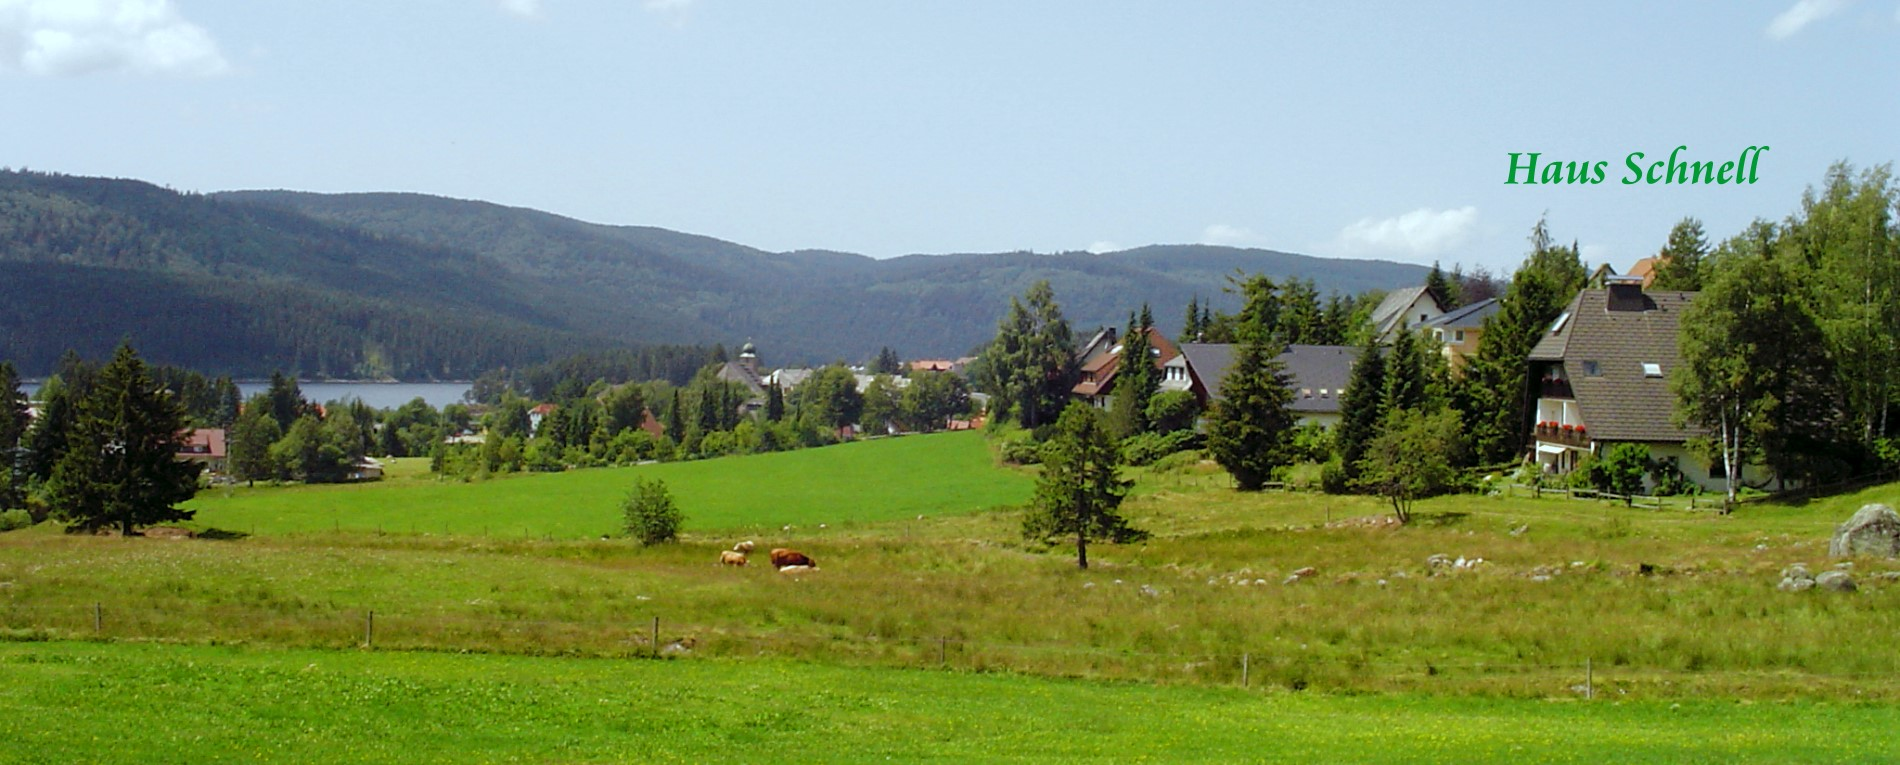 Holiday apartments in Schluchsee Black Forest Germany - Gästehaus Schnell